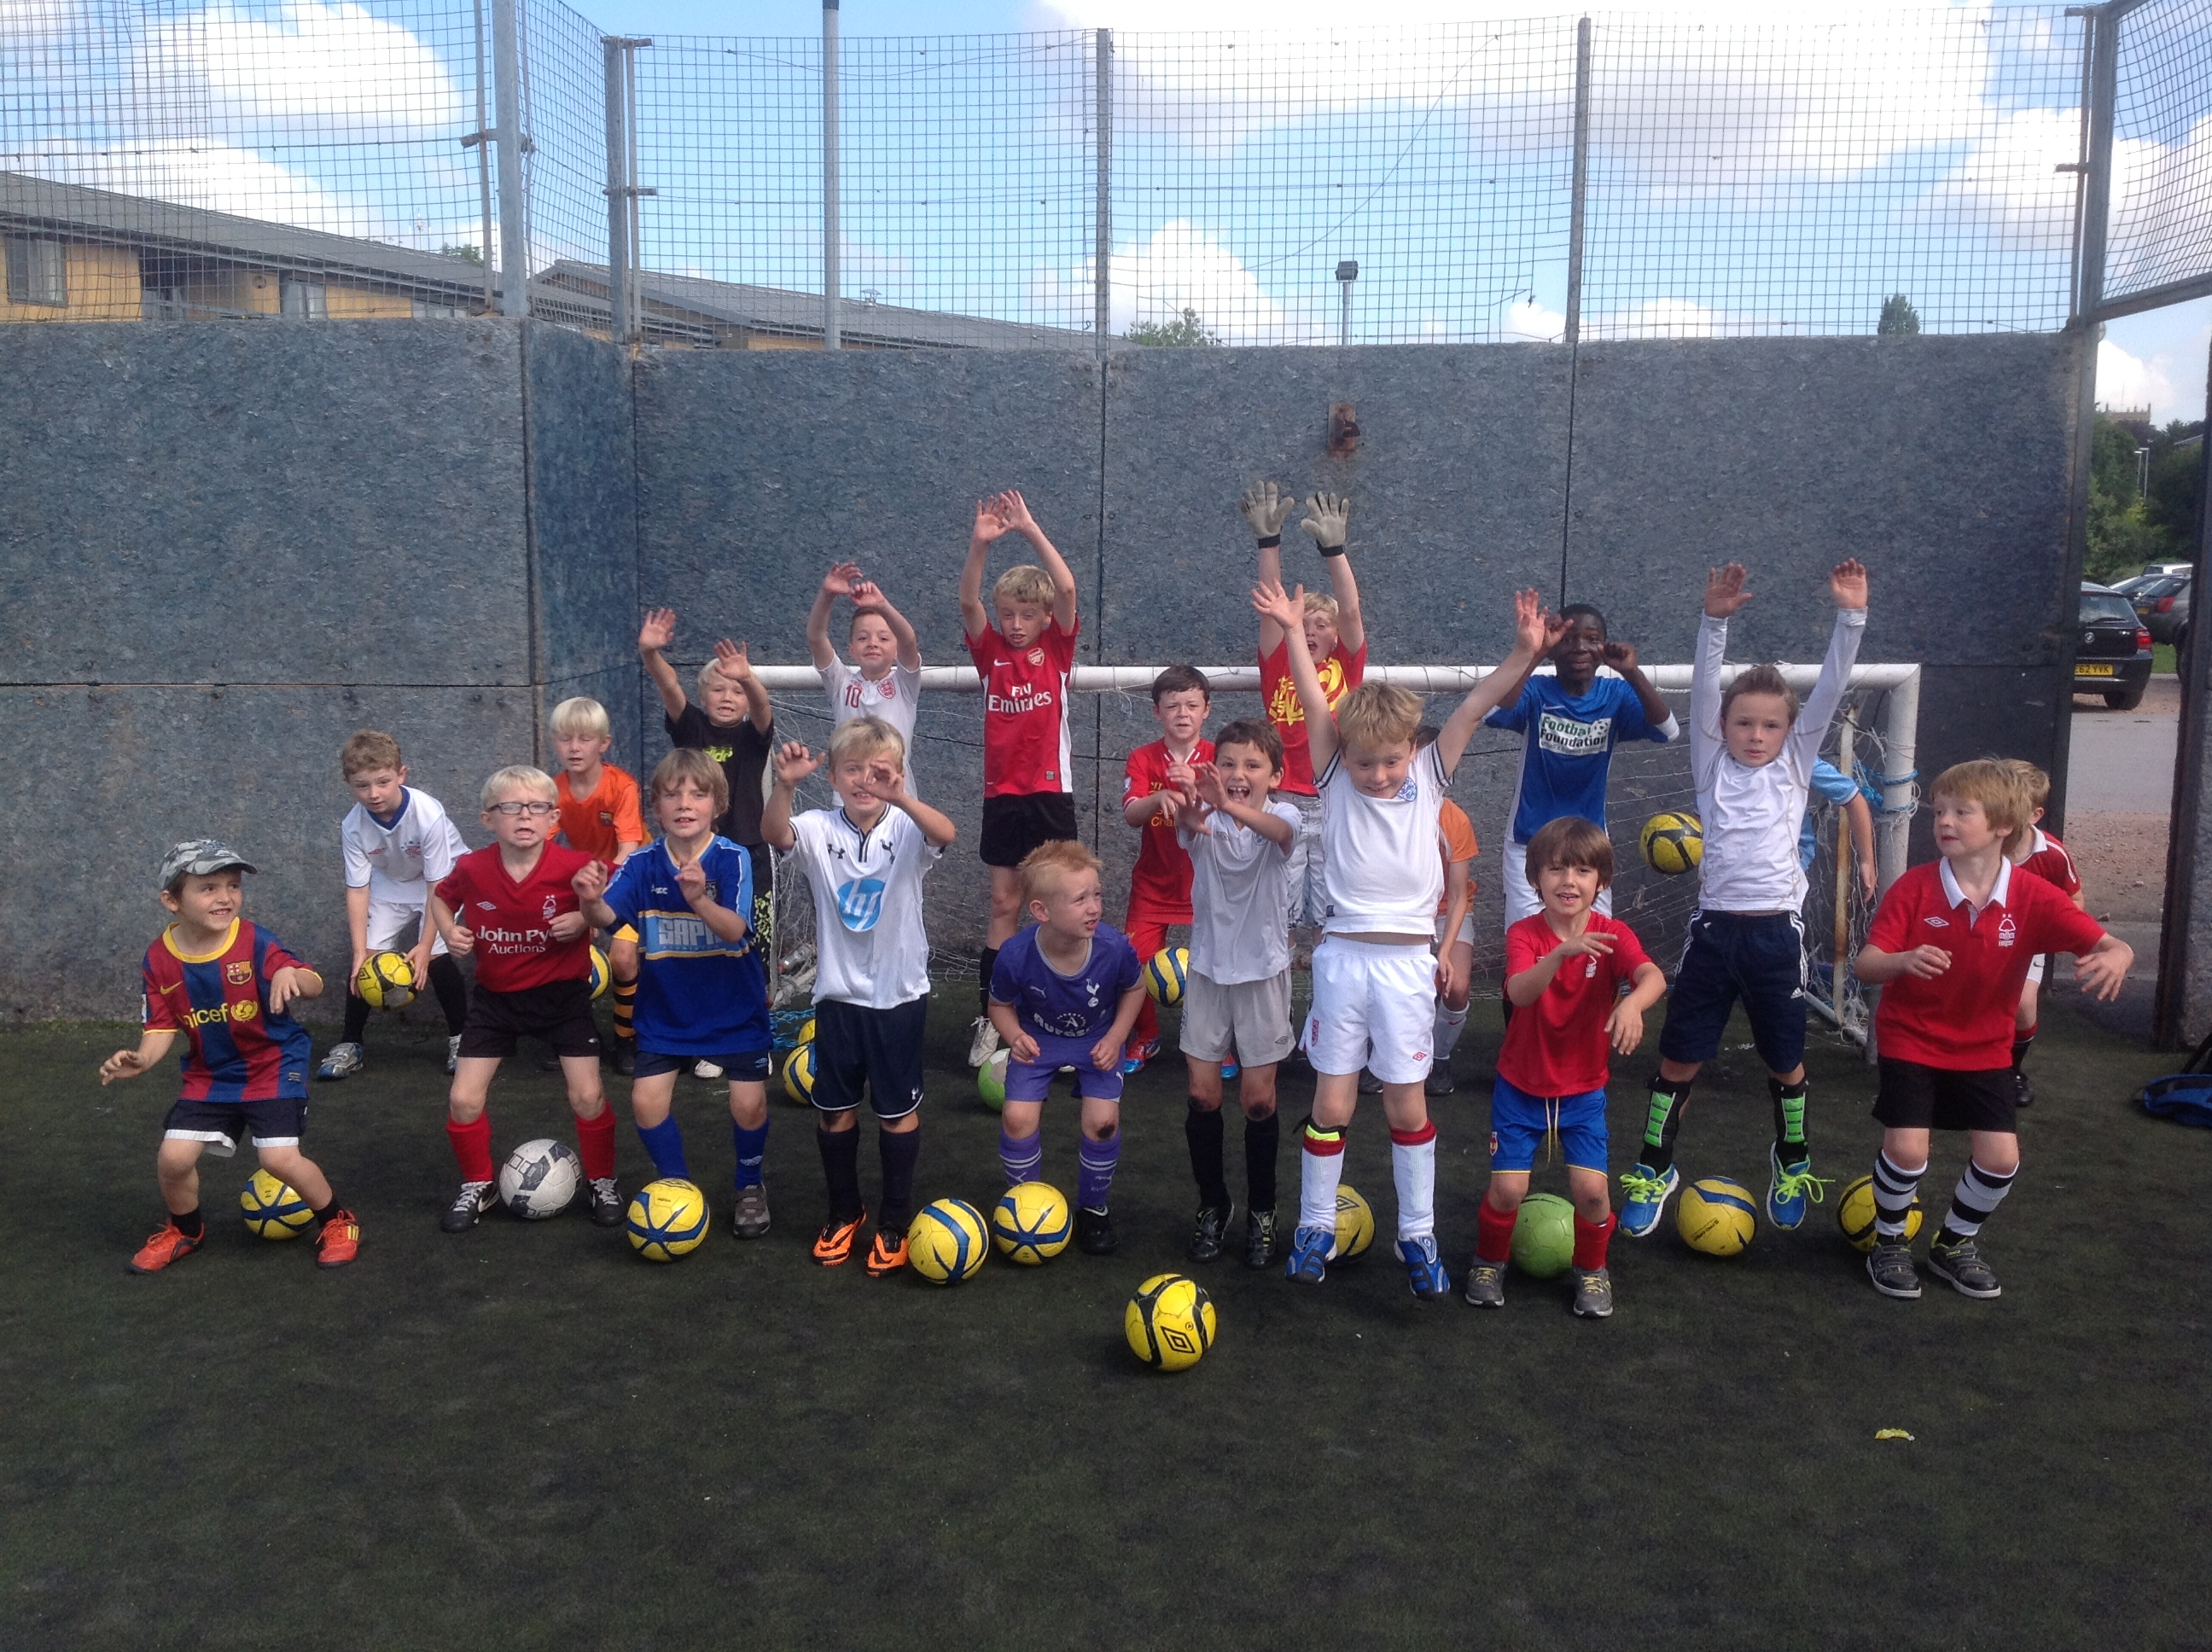 Football Coaching Birmingham and Sutton Coldfield